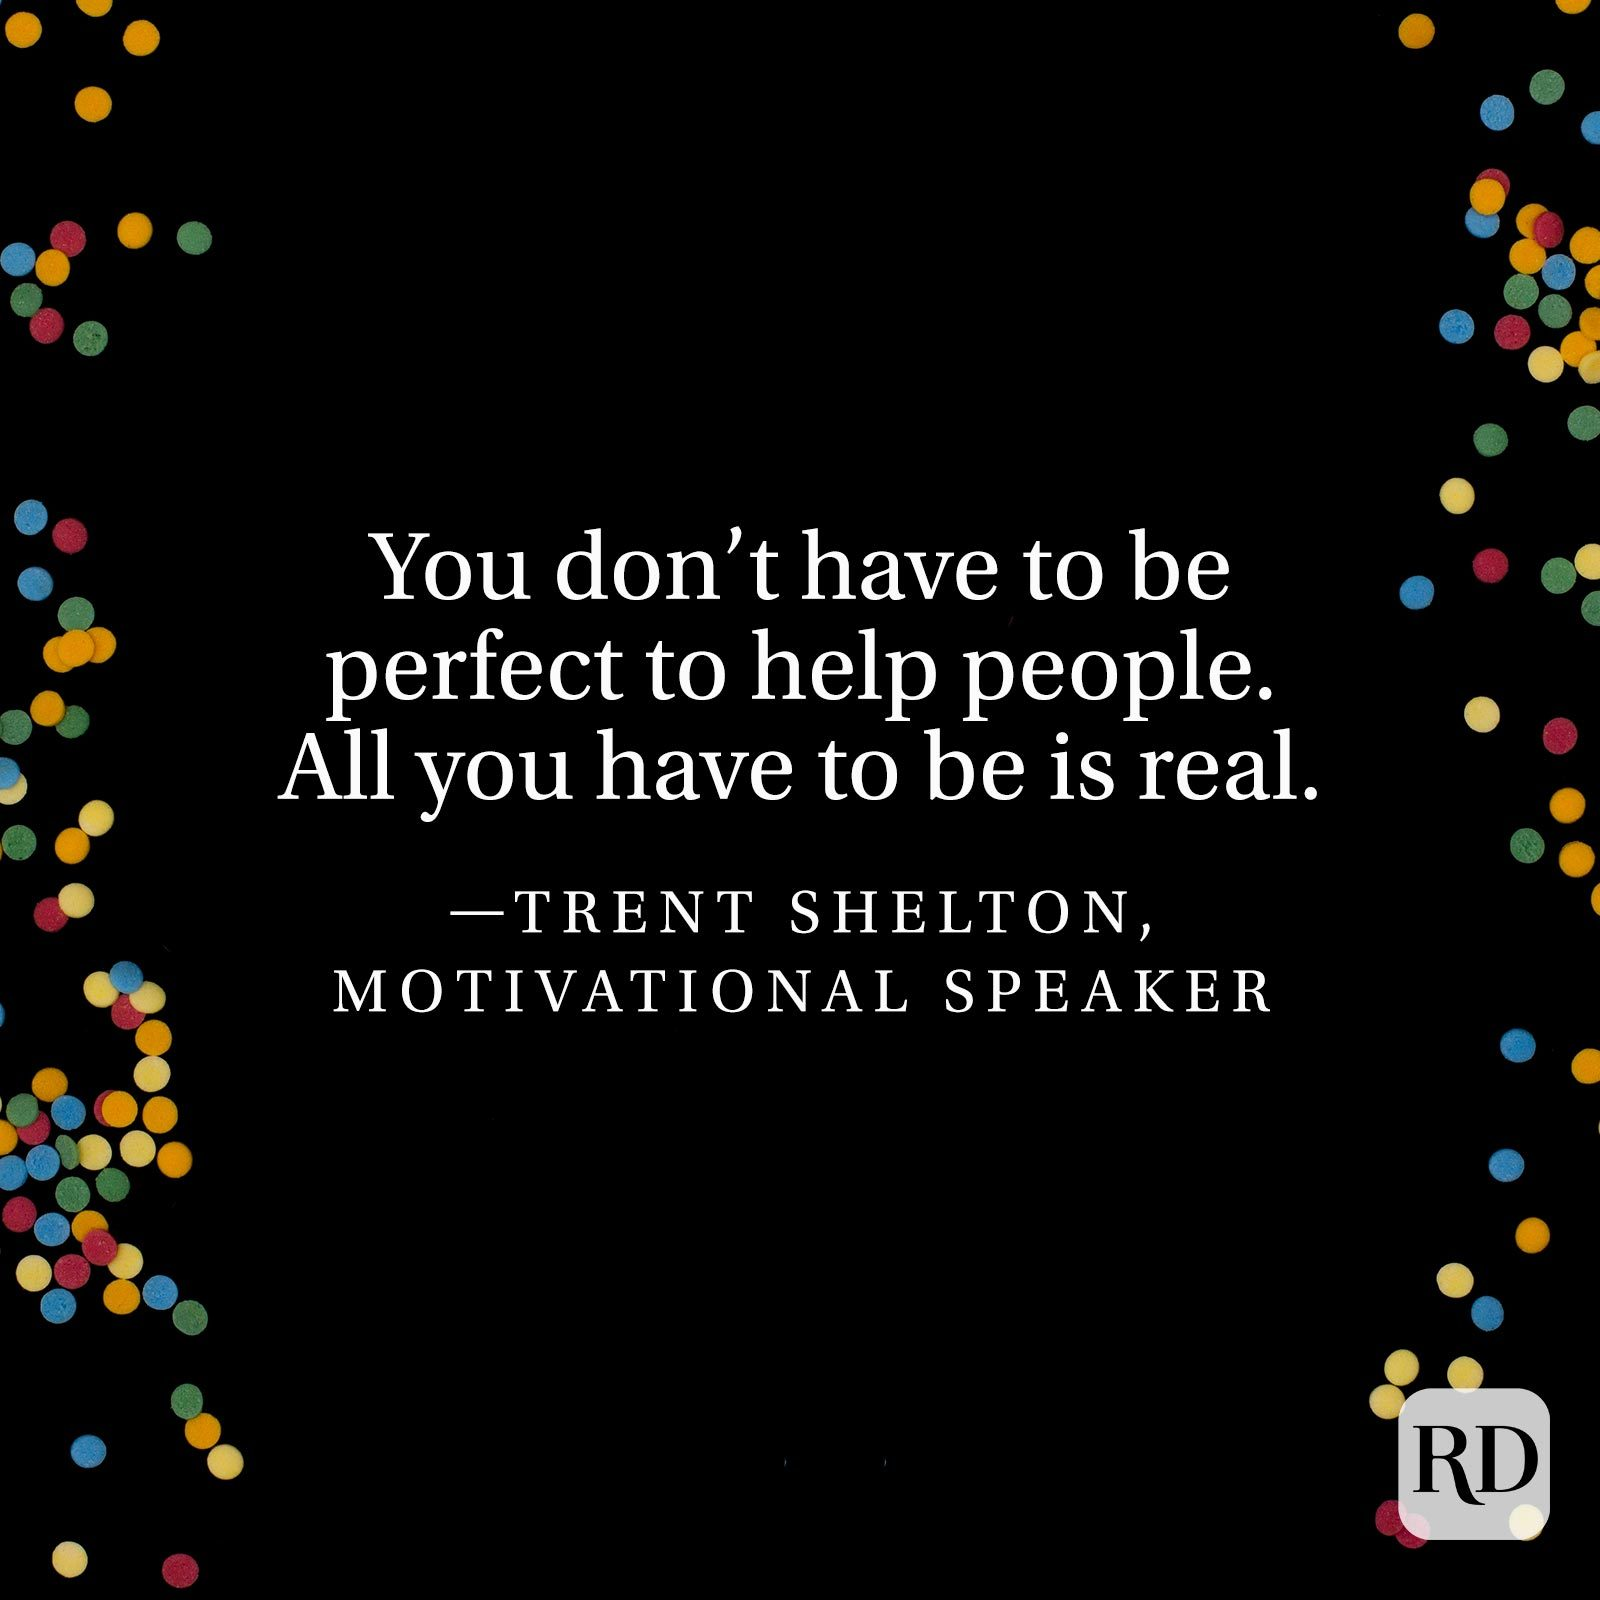 """""""You don't have to be perfect to help people. All you have to be is real."""" —Trent Shelton, motivational speaker"""